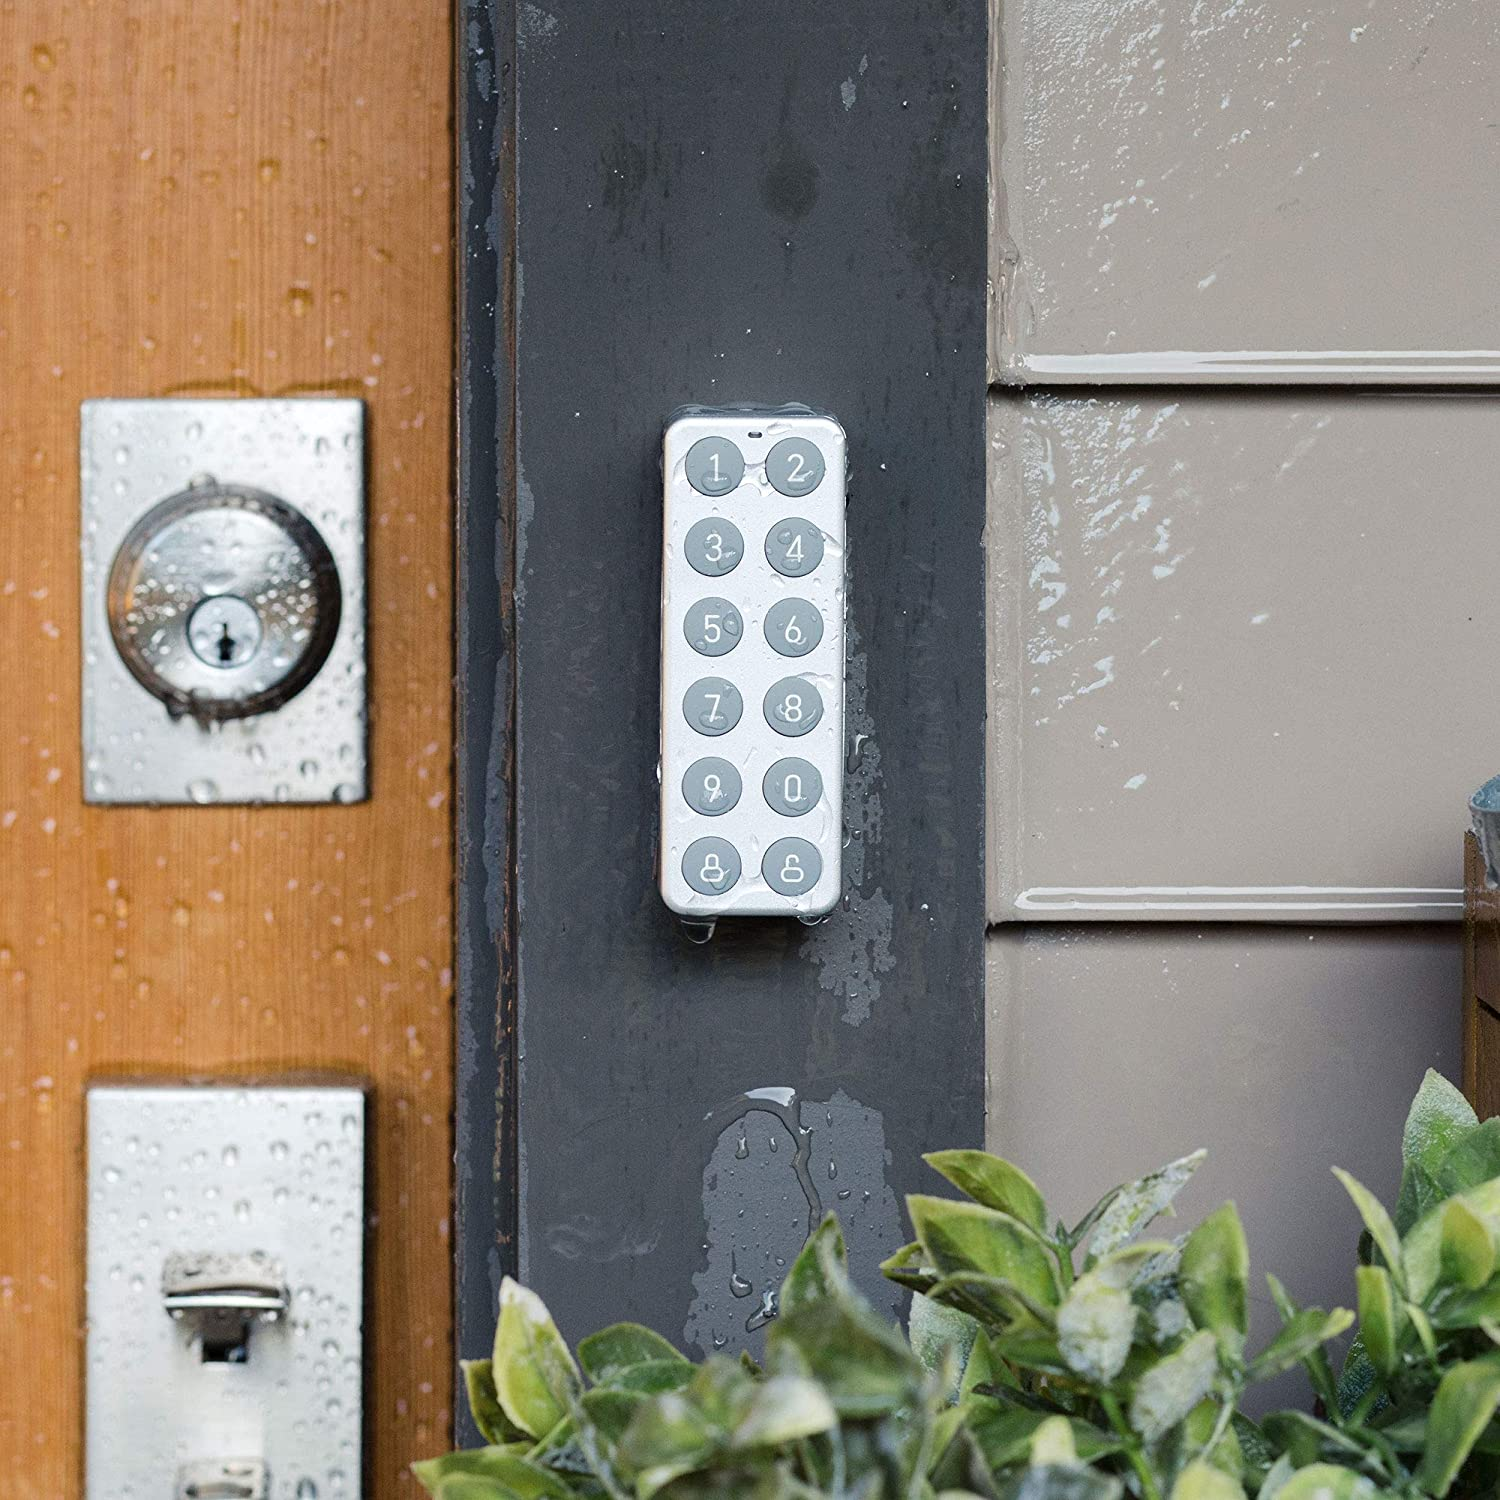 A Completely Wireless Bluetooth keypad That Allows You to Create and use Unique Codes to Unlock Your Wyze Lock Share Wyze Lock Sold Separately Wyze Lock Keypad for Wyze Lock